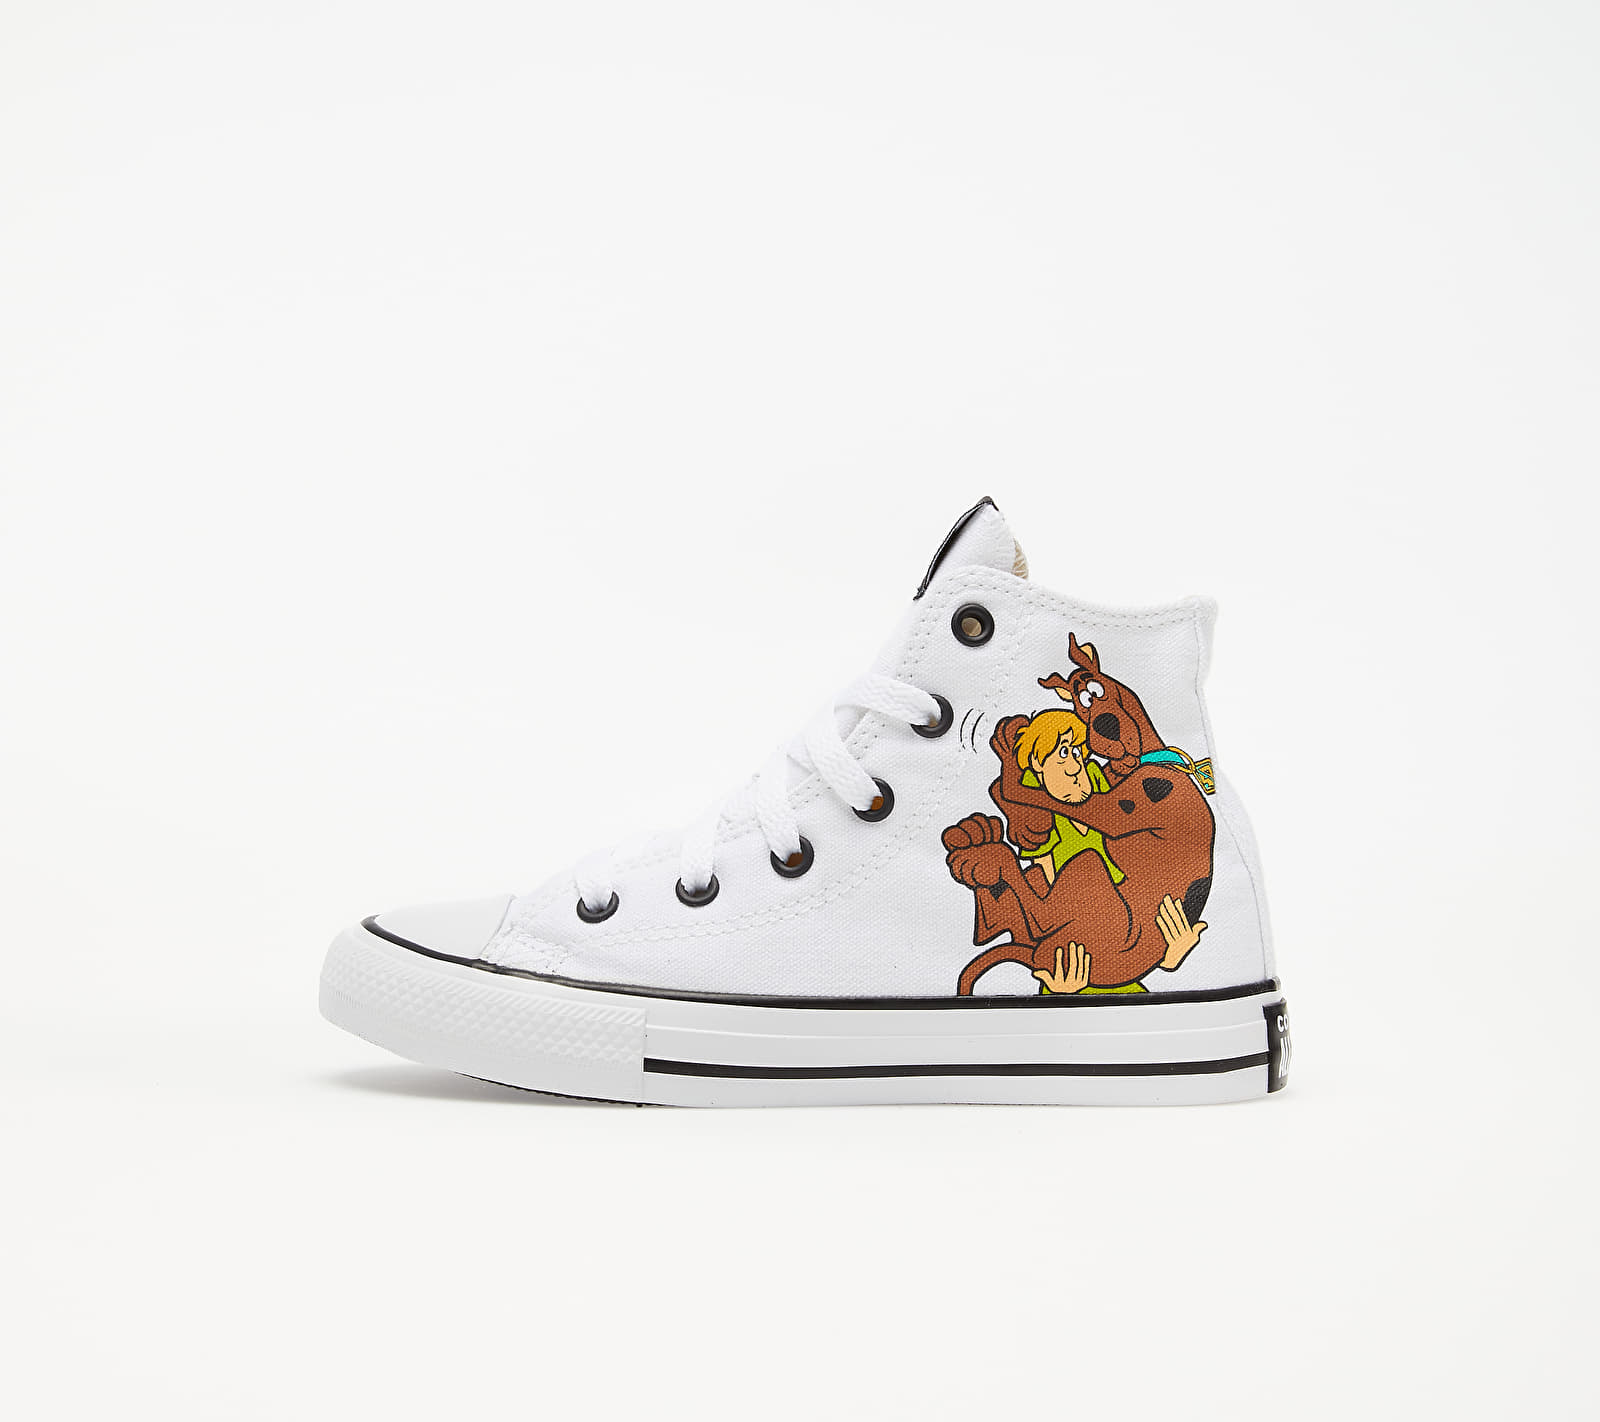 Converse X Scooby-Doo Chuck Taylor All Star Hi White/ Multi/ Black EUR 31